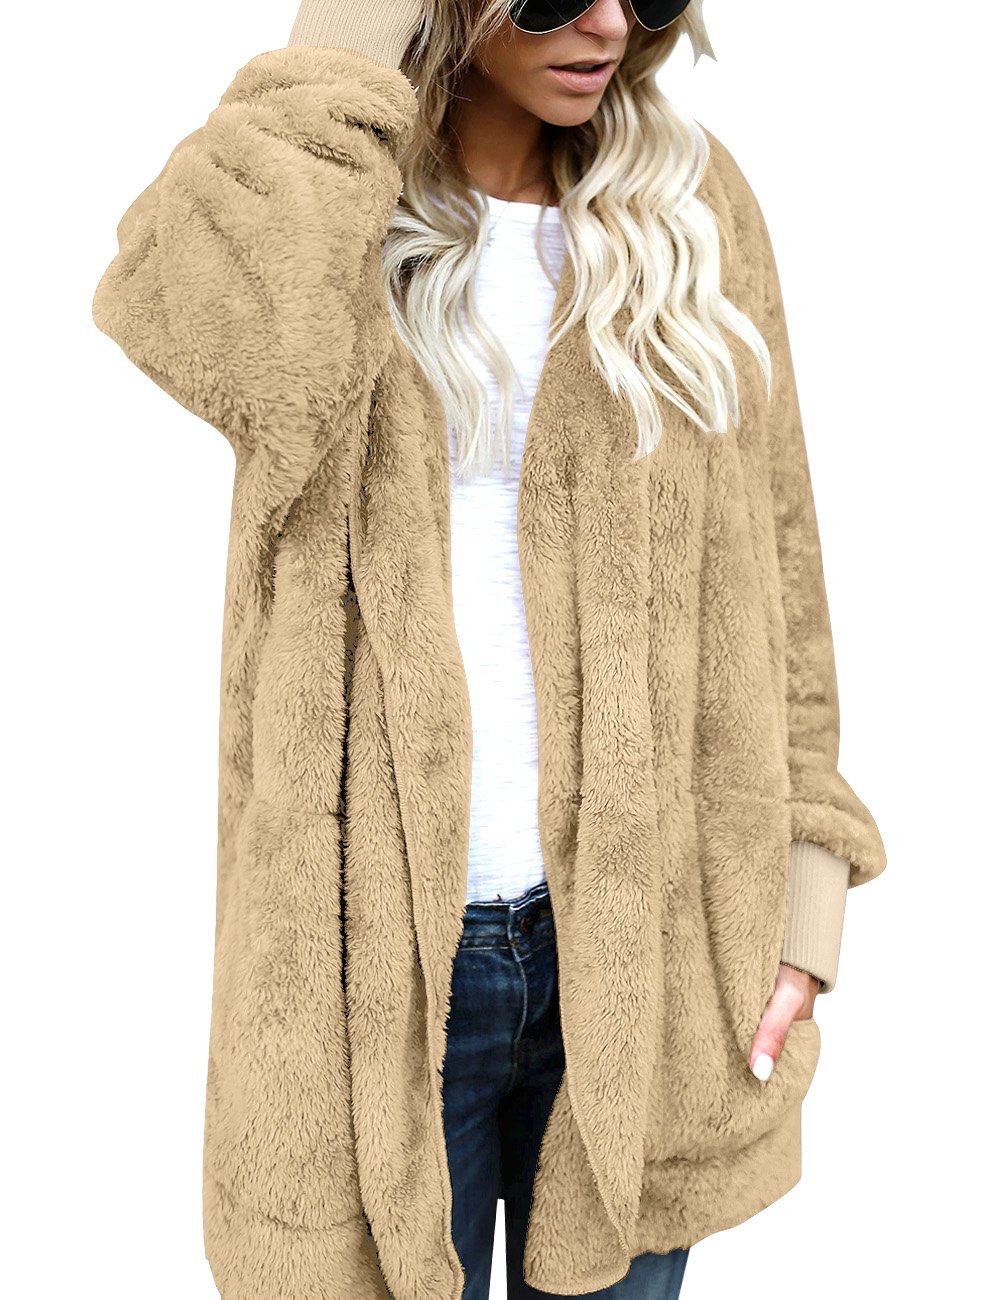 LookbookStore-Womens-Oversized-Open-Front-Hooded-Draped-Pockets-Cardigan-Coat